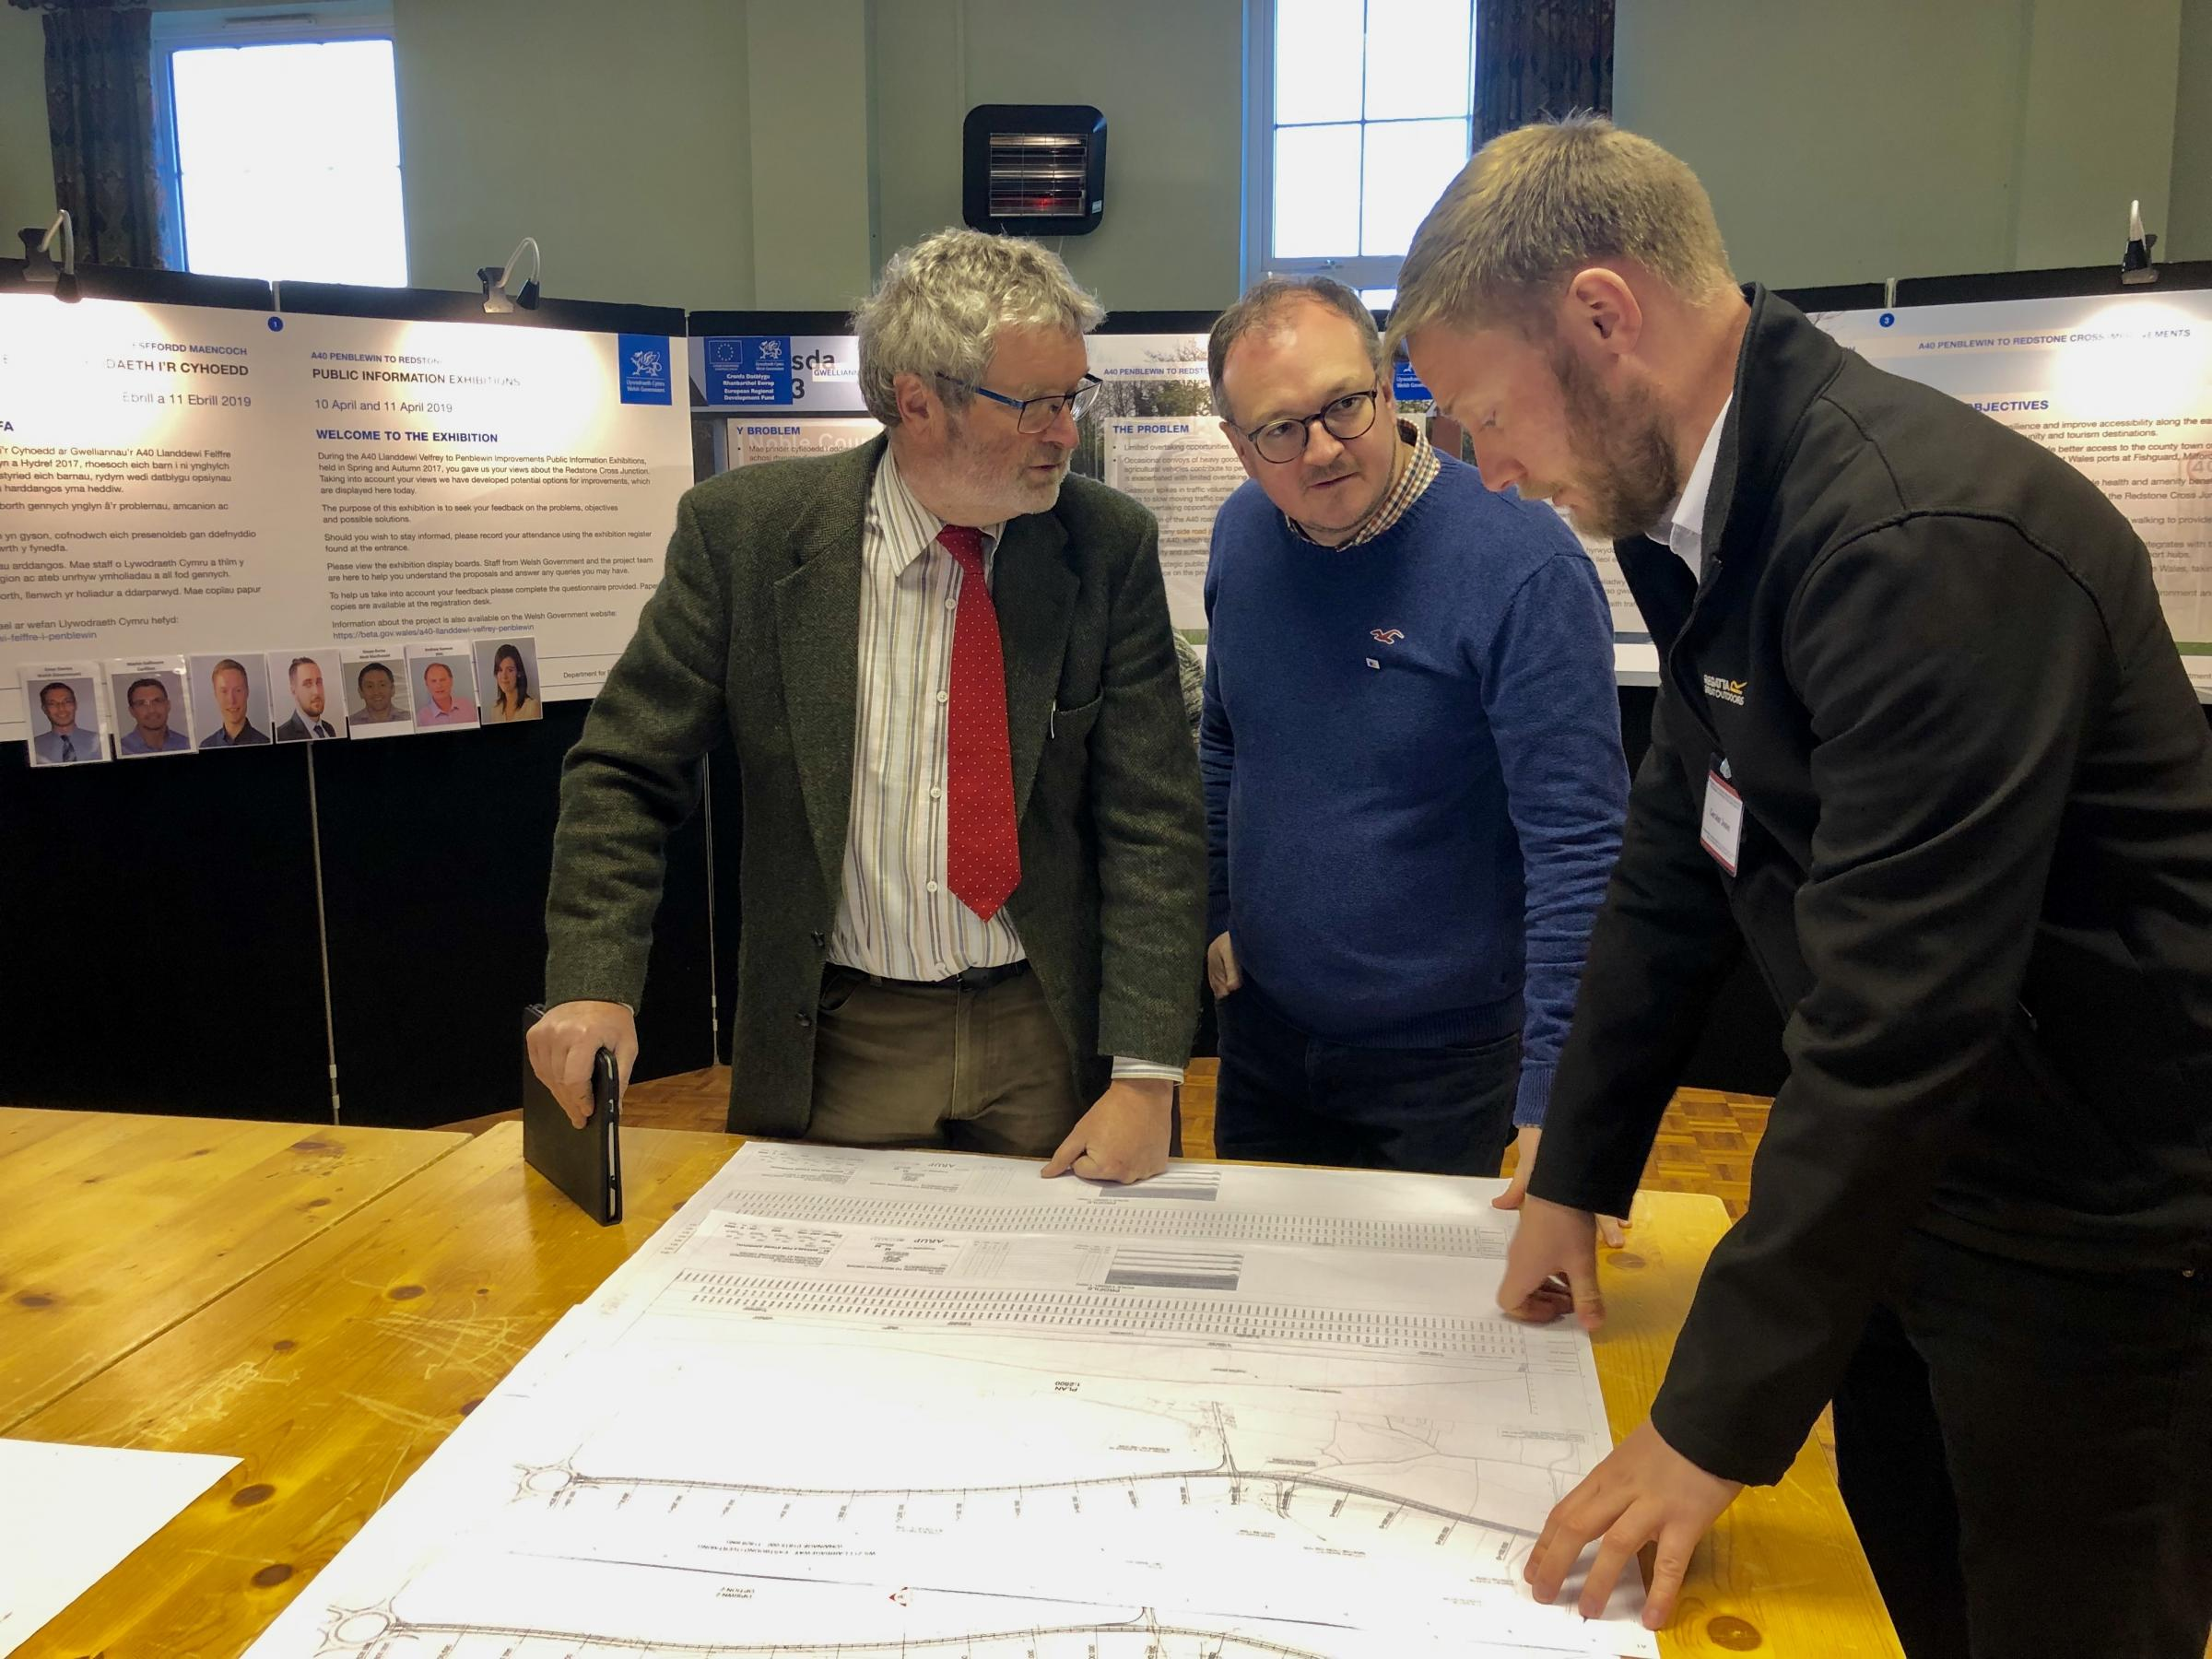 Cllr Vic Dennis and Marc Tierney viewing plans at the recent A40 Penblewin - Redstone Cross consultation event in Llanddewi Velfrey.